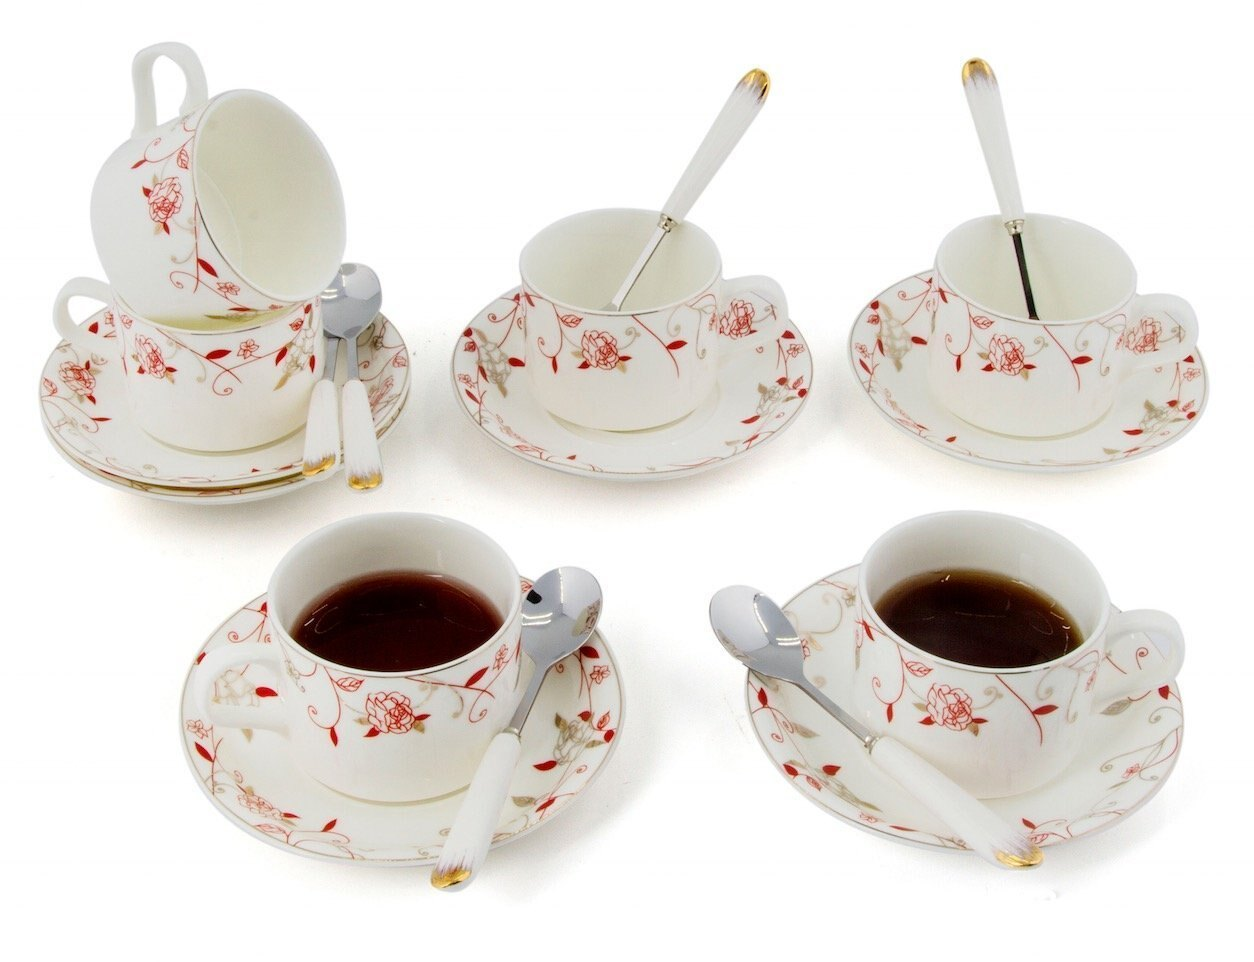 Porcelain Tea Cup And Saucer Coffee Set With Spoon 18 Pc